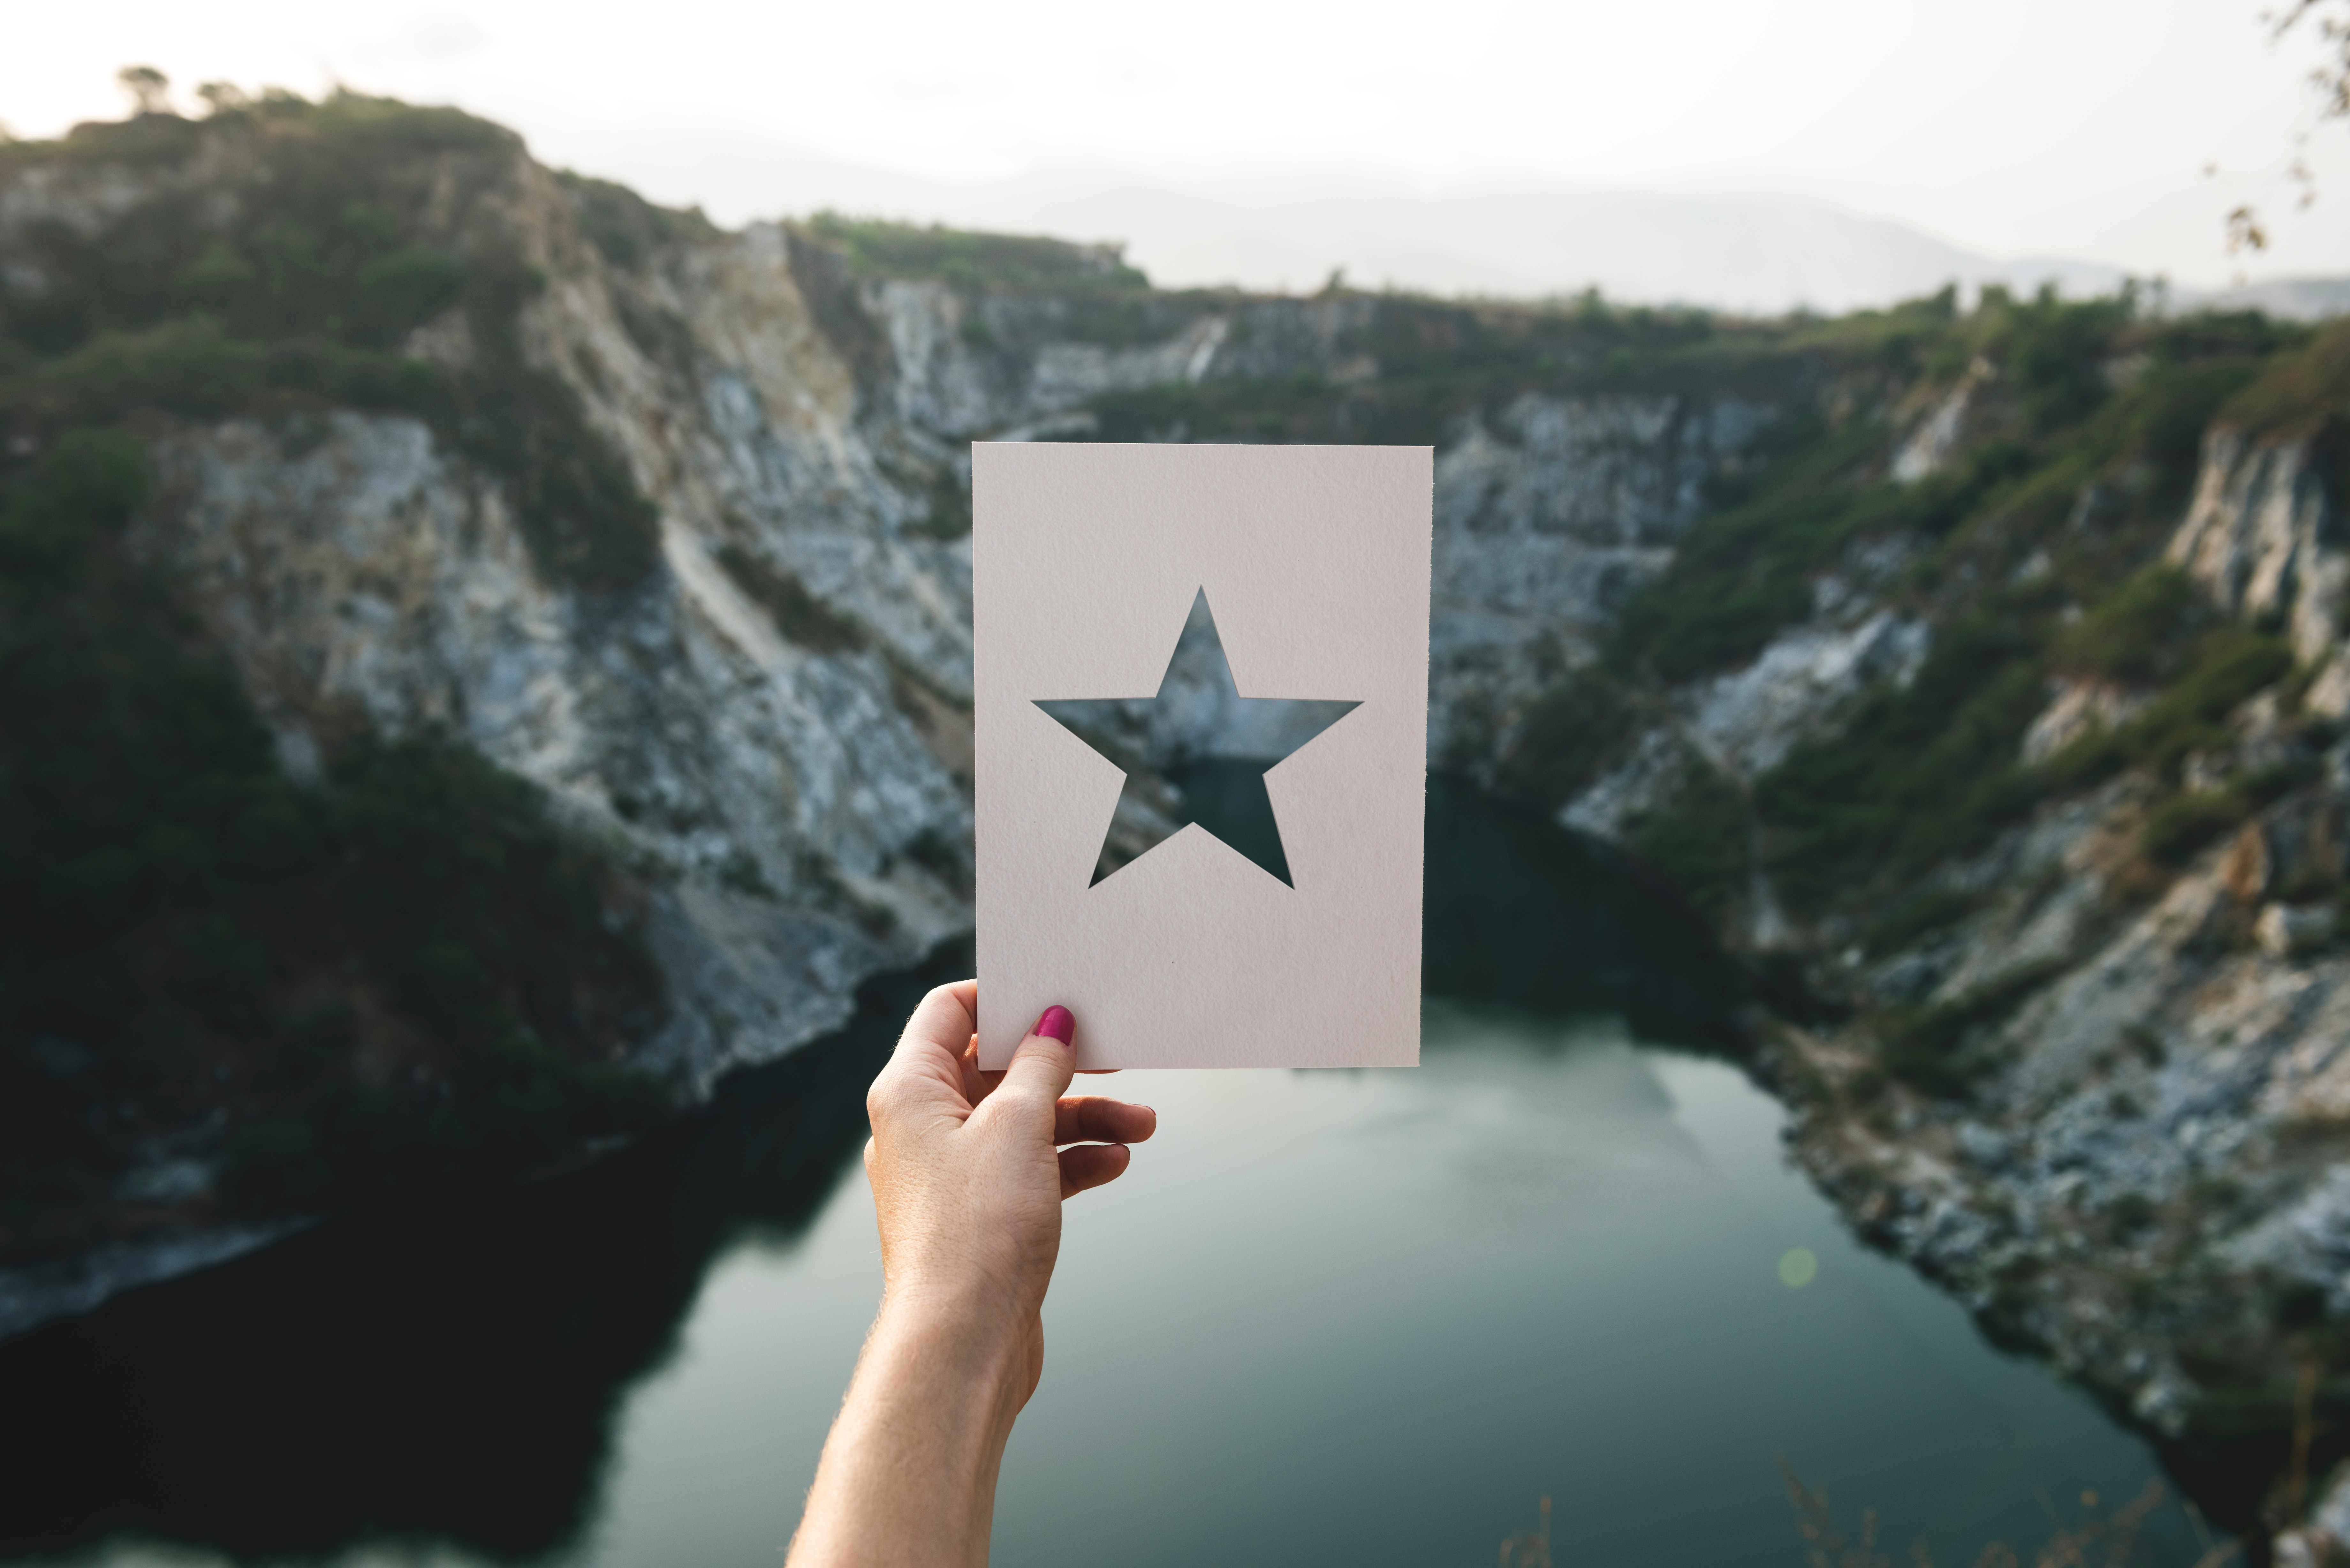 Person holding star cutout paper facing mountain photo